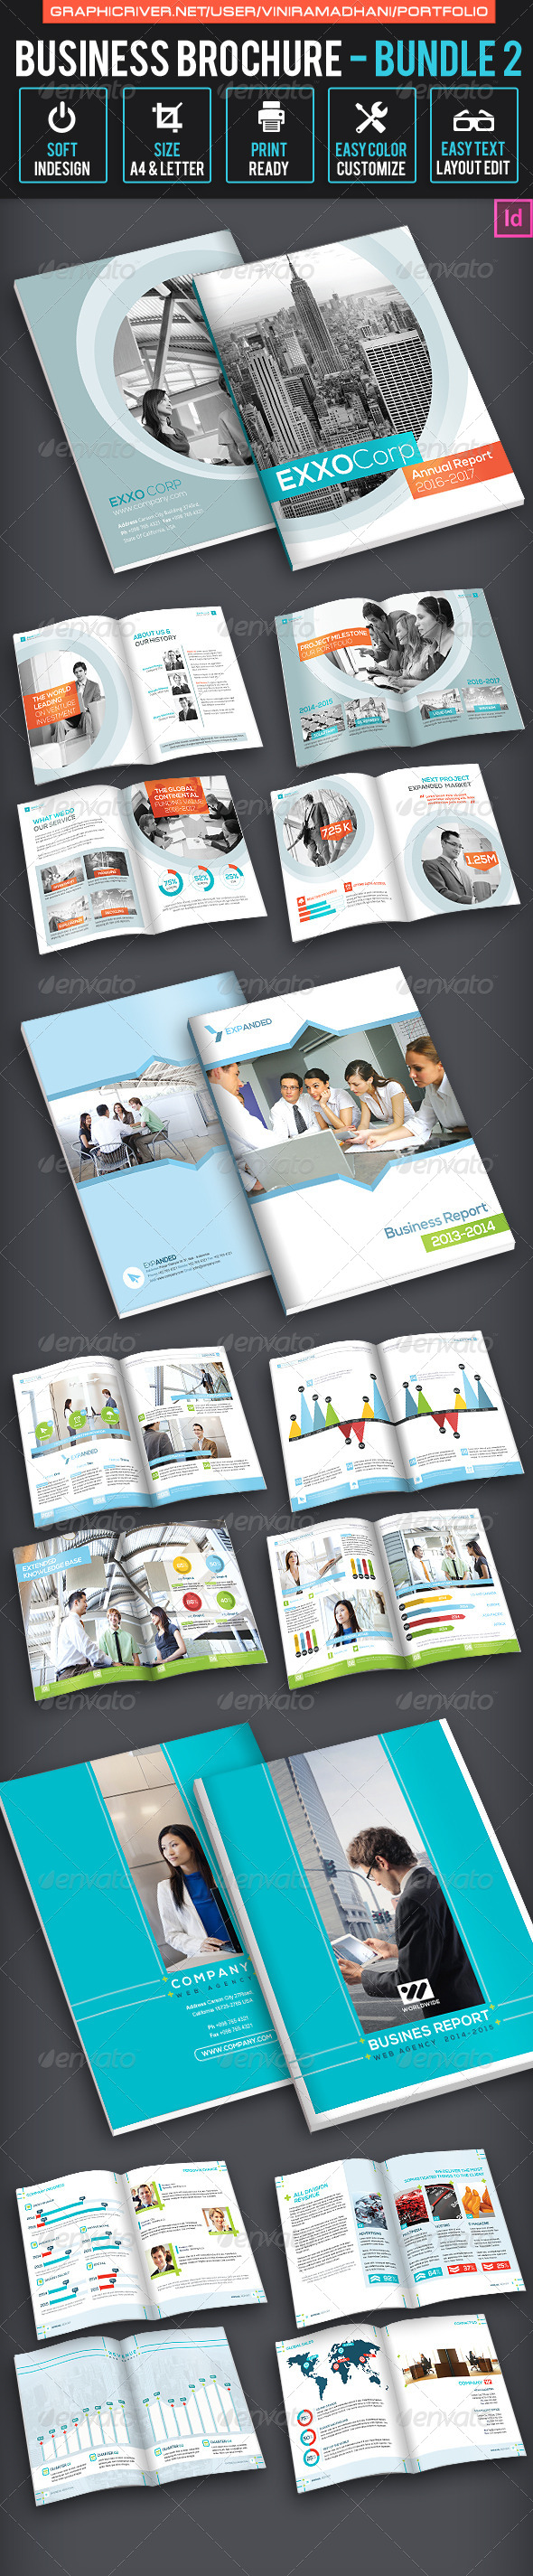 Business Brochure Bundle 2 - Corporate Brochures